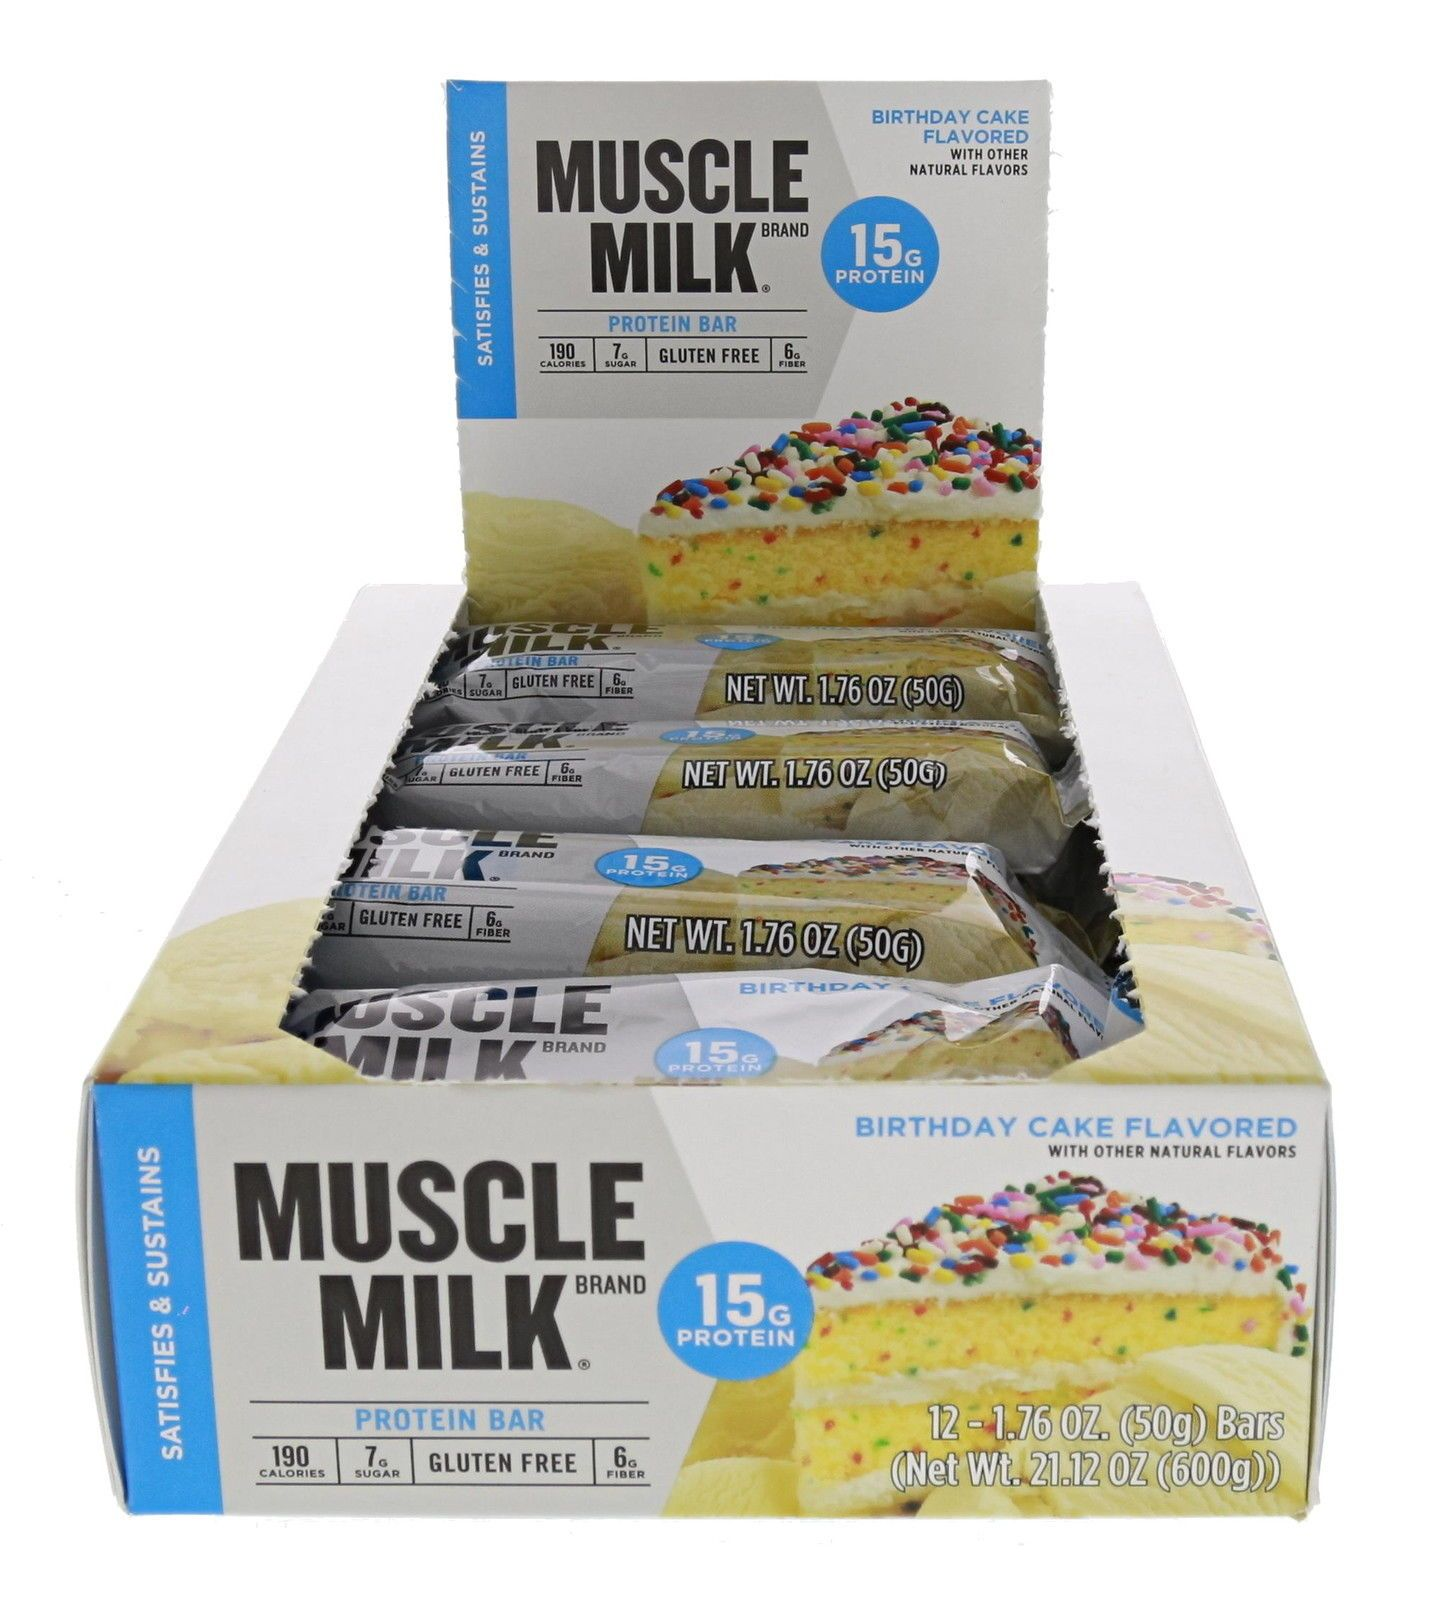 Cytosport Muscle Milk Blue Bar Birthday Cake 12 176oz Bars